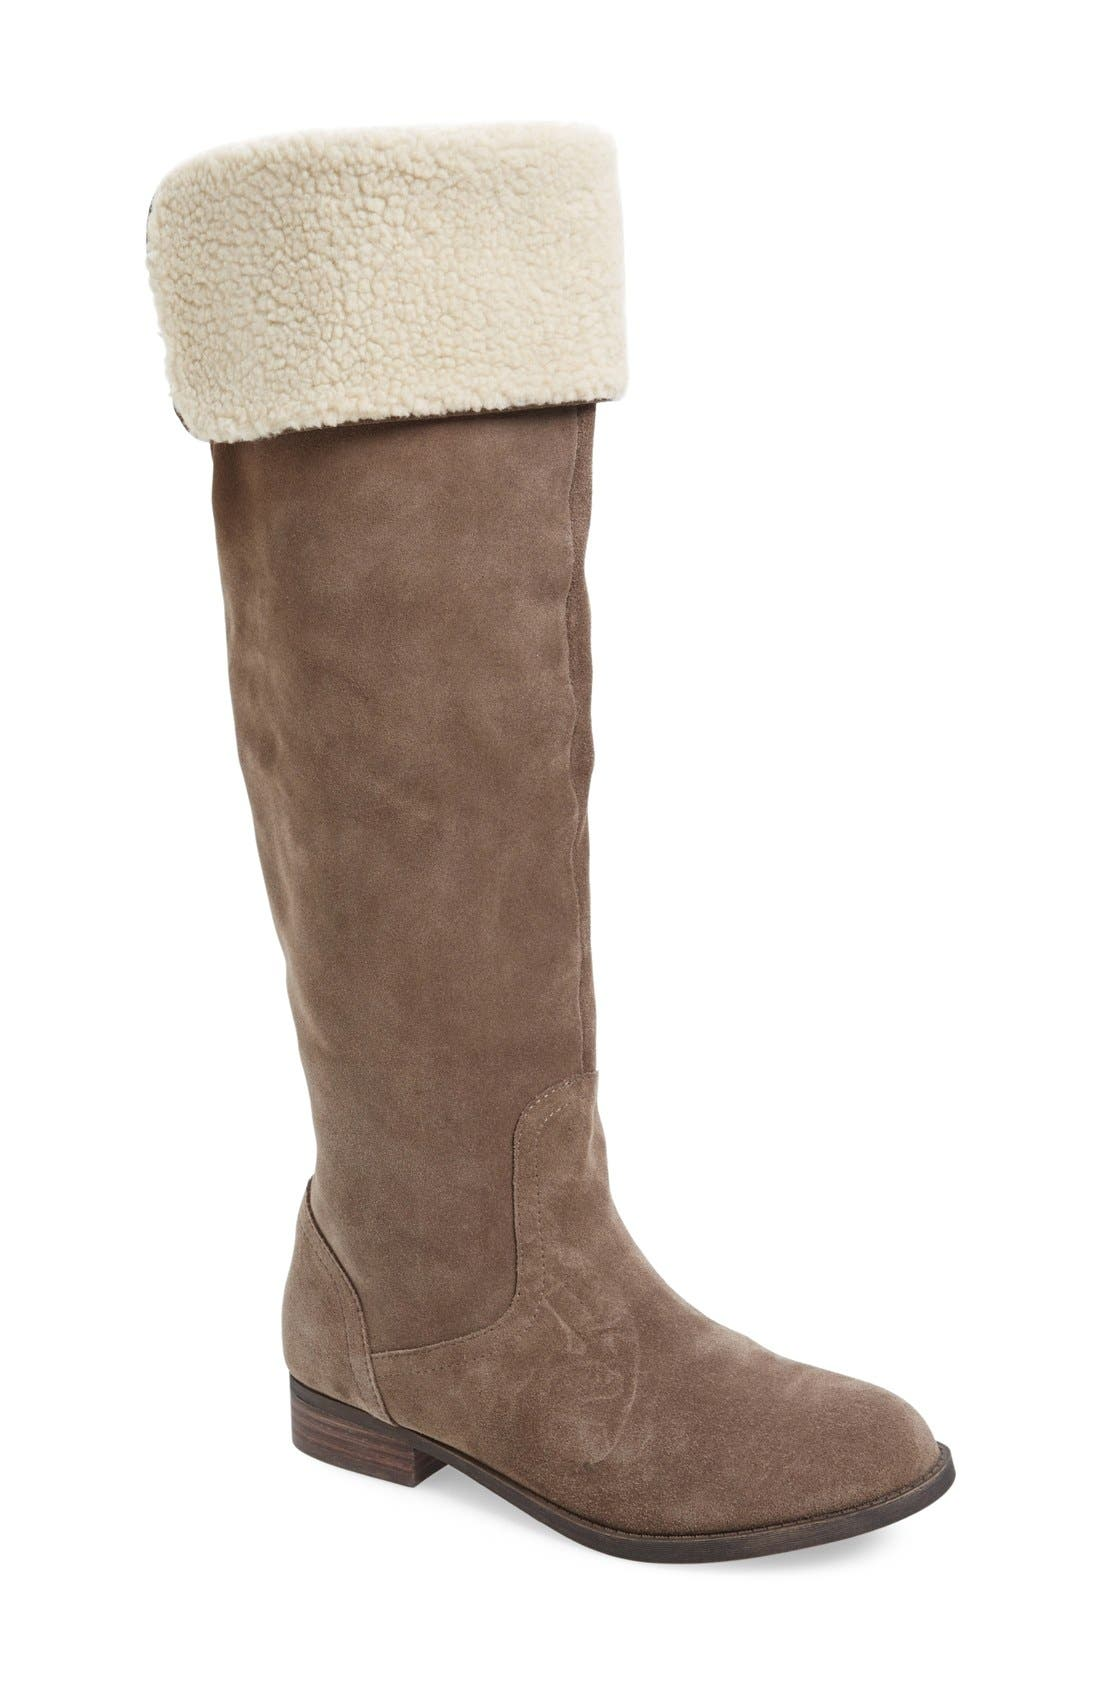 Alternate Image 1 Selected - Sole Society 'Lanee' Tall Boot (Women)